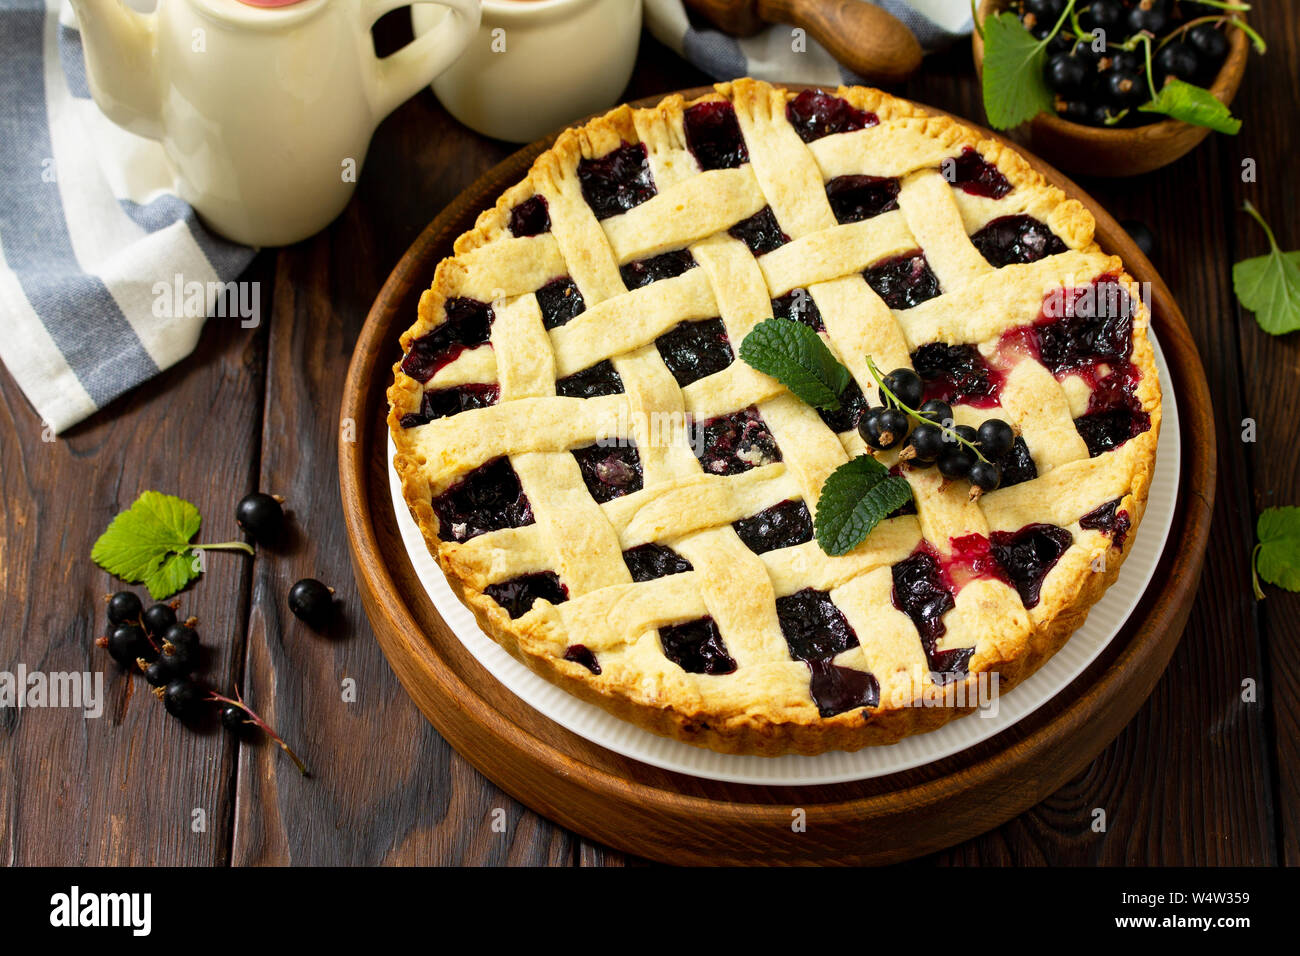 Berry pie summer. Sweet pie, tart with fresh berry currant. Delicious cake with currant. Free space for your text. Stock Photo